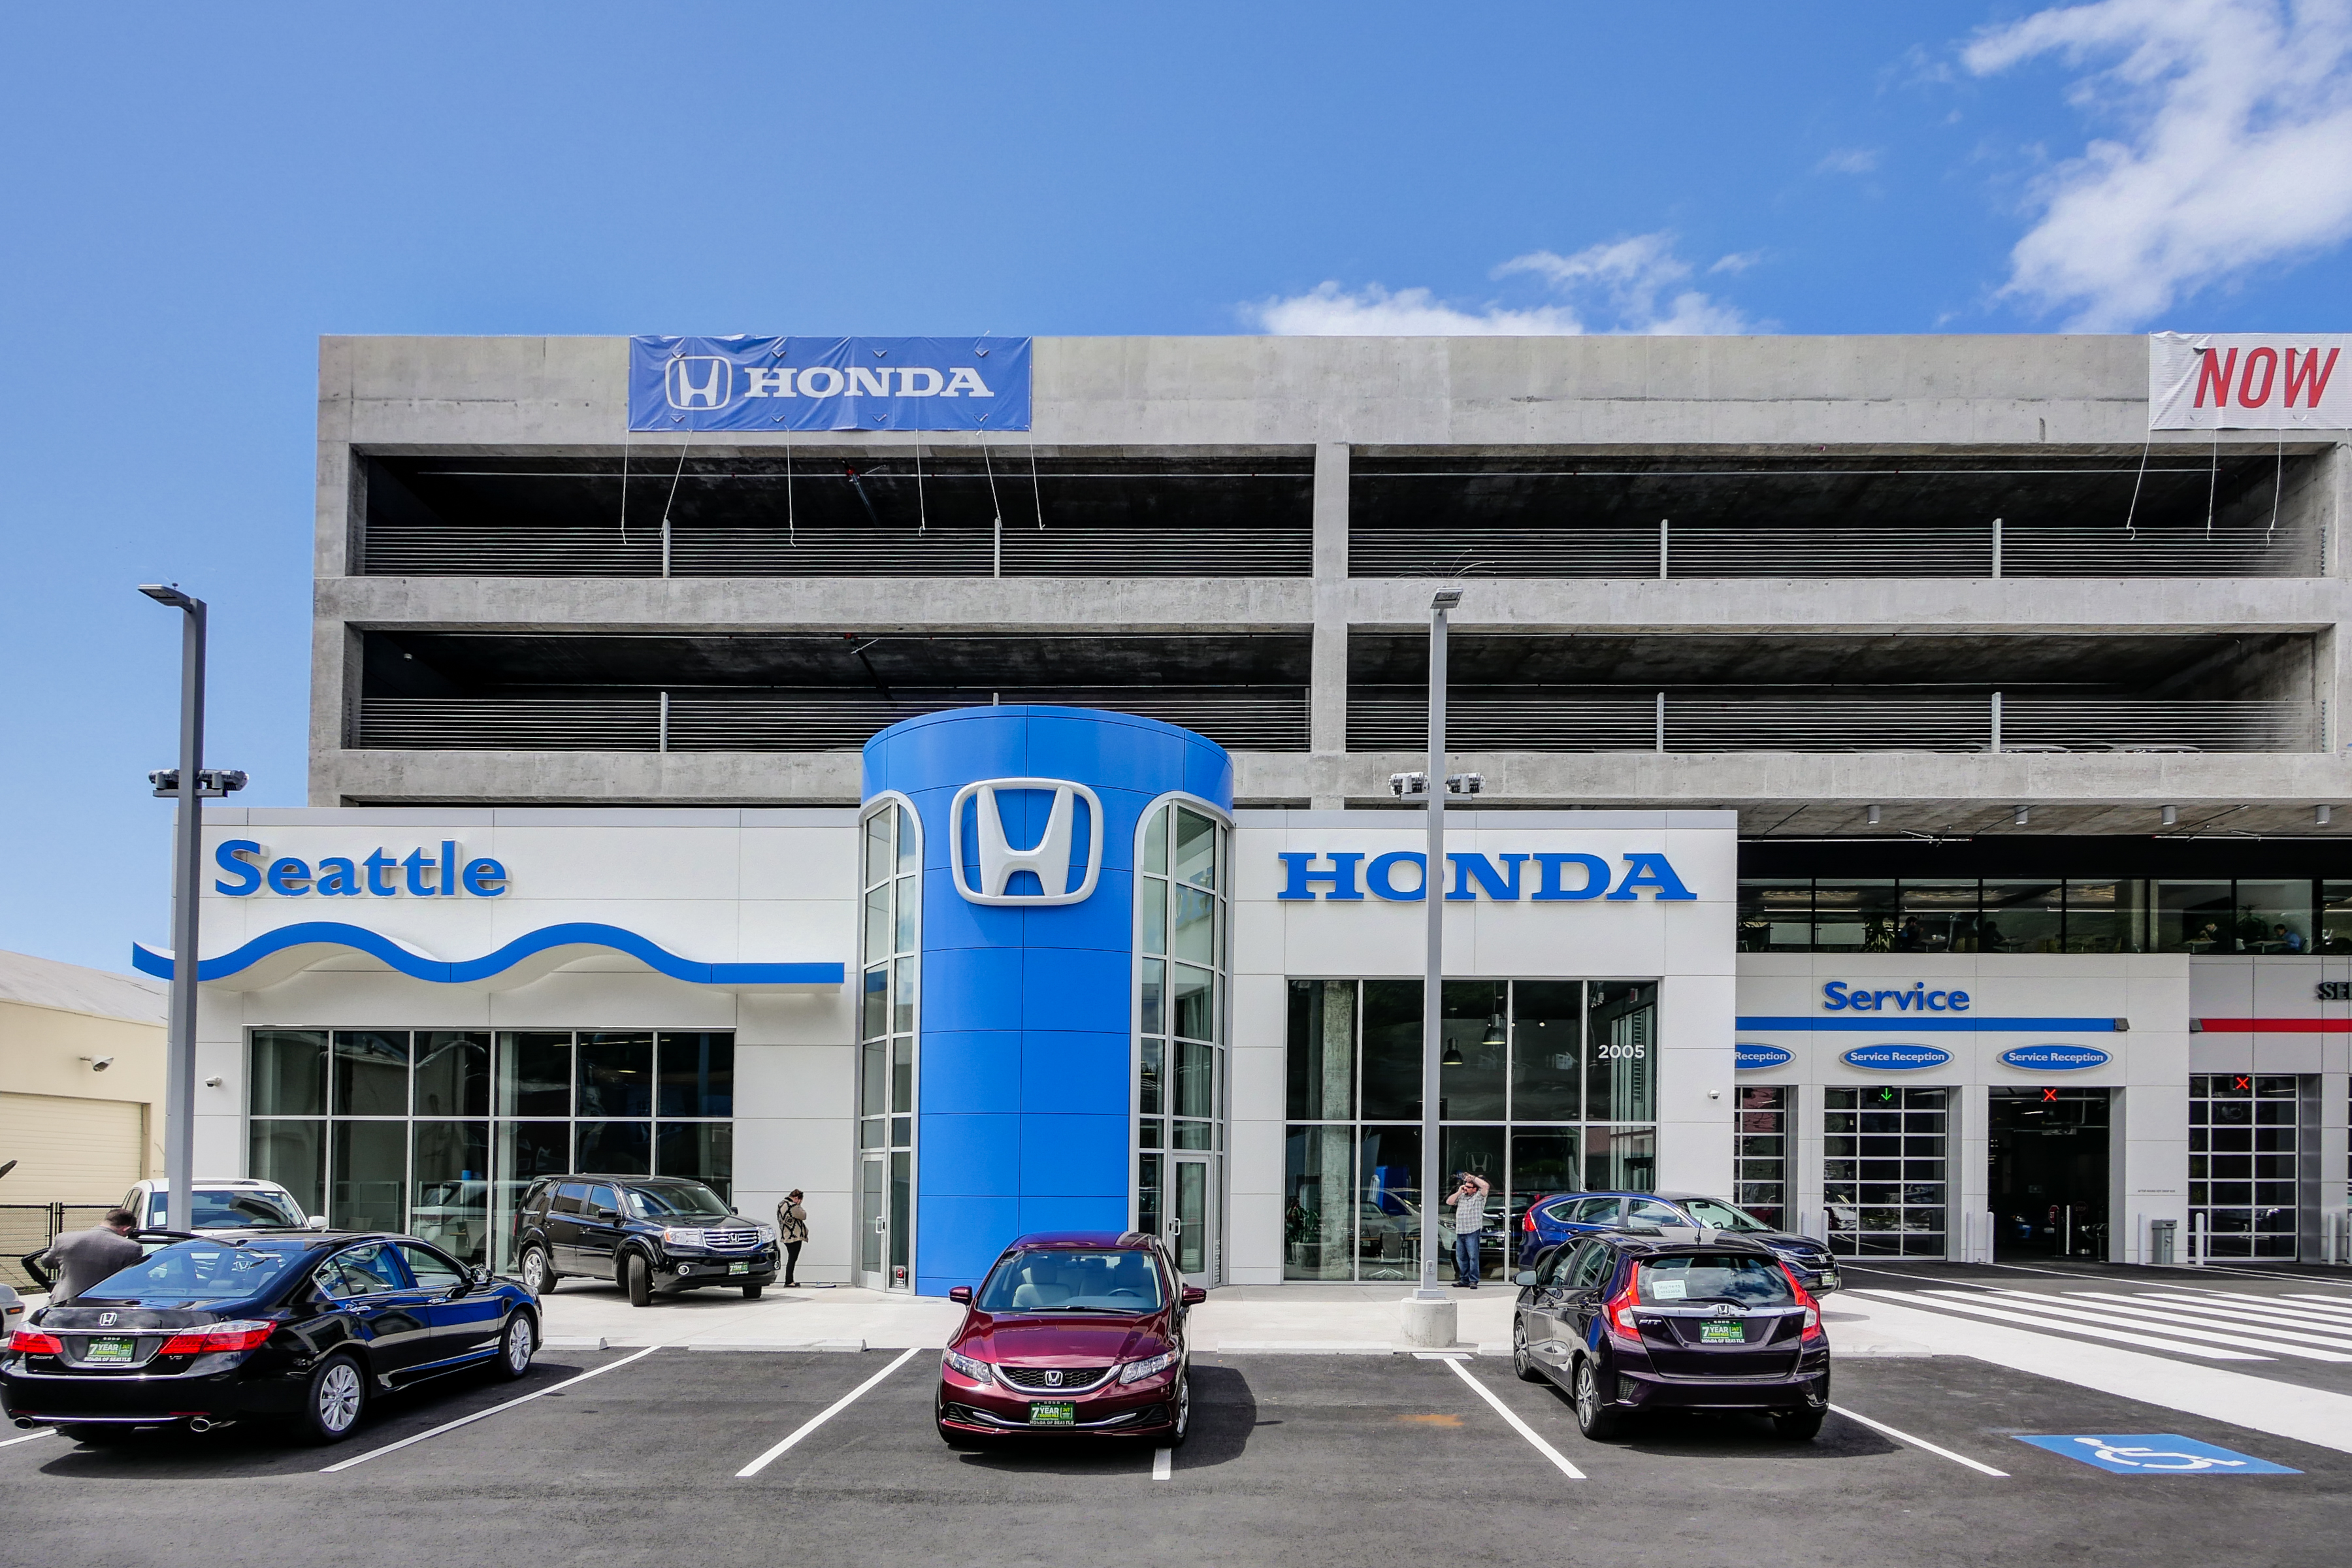 For Maps And Directions To Honda Of Seattle View The Map To The Right. For  Reviews Of Honda Of Seattle See Below.